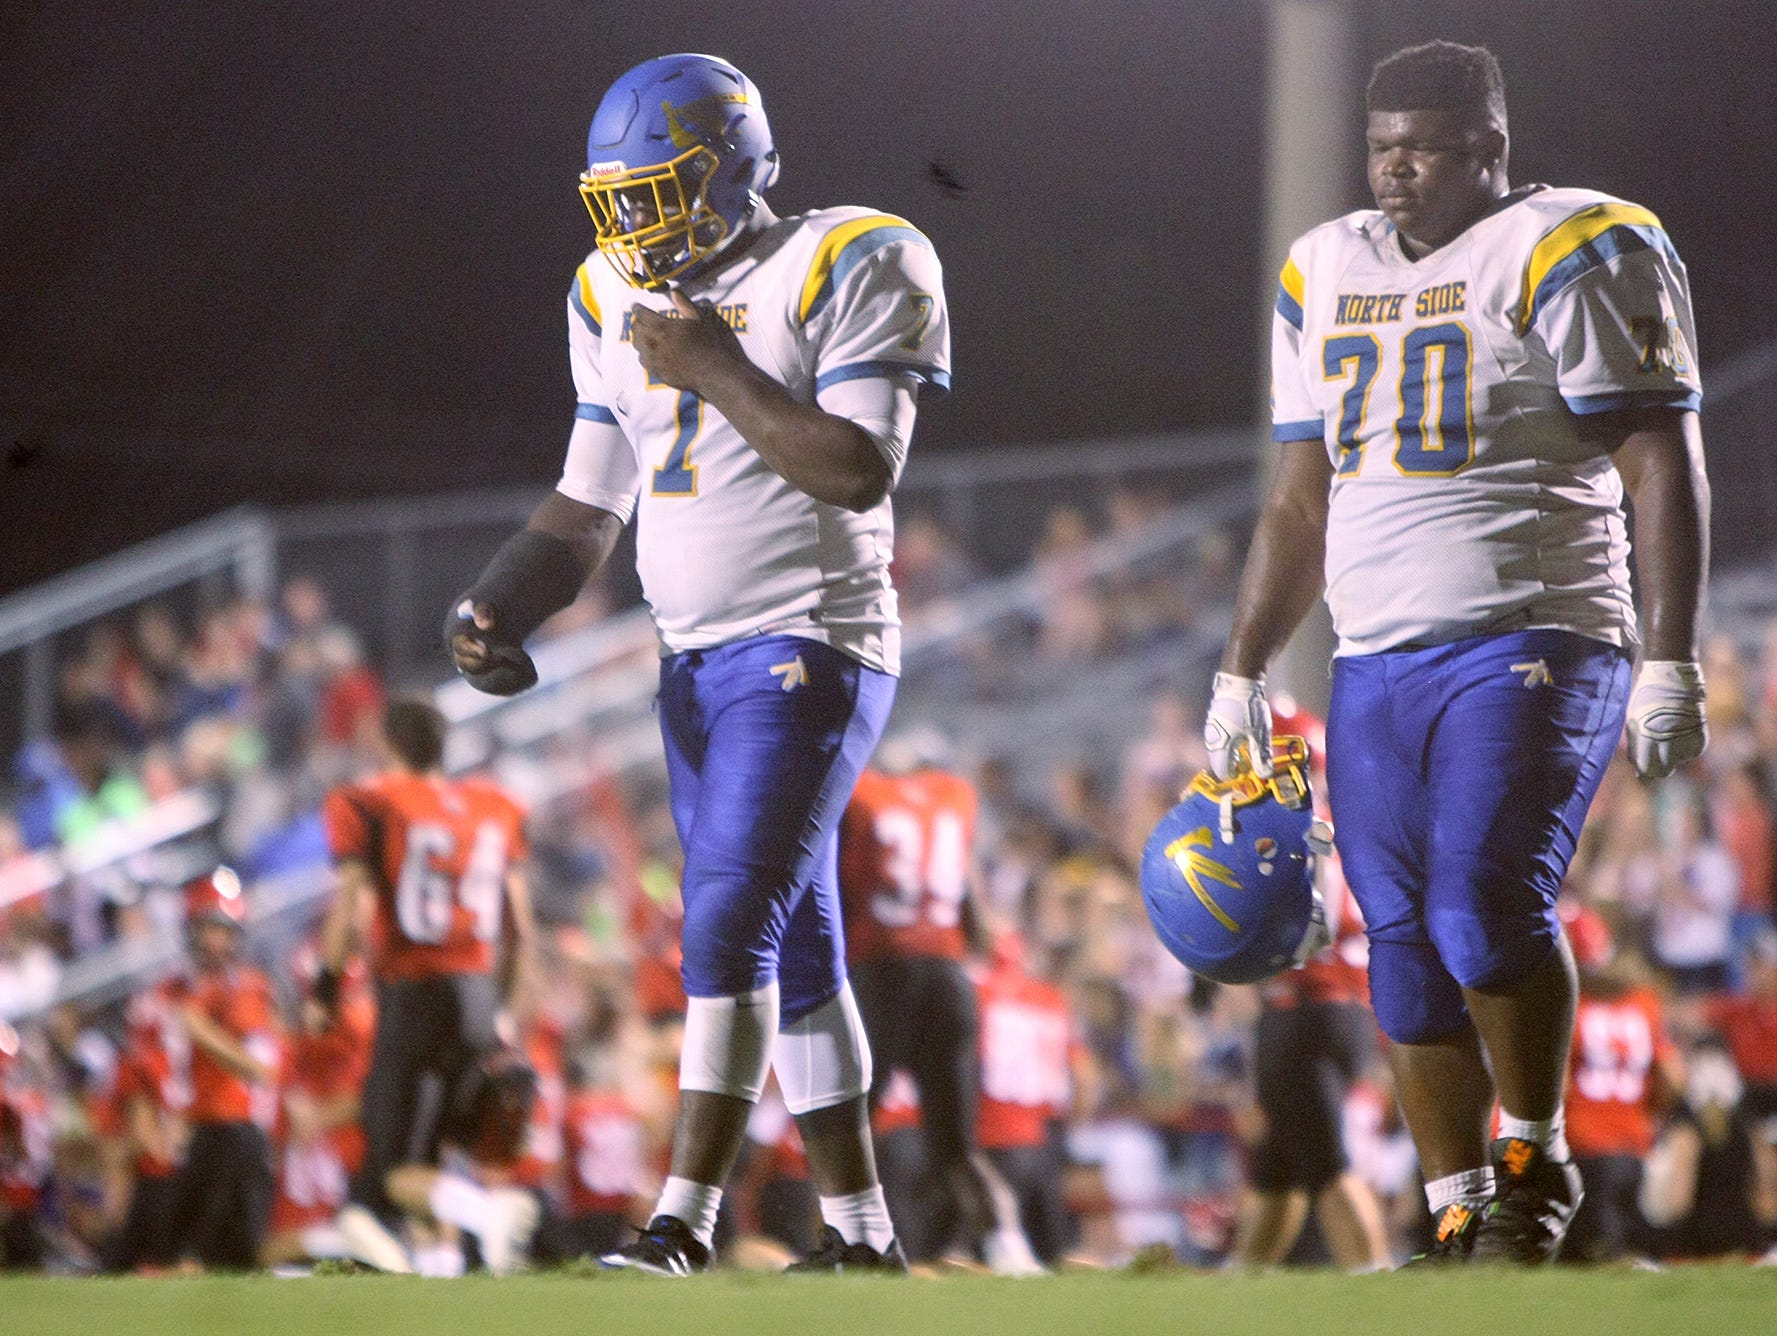 North Side's Greg Emerson (7) and Kevin Albea (70) walk off the field after the first half against Lexington at Jim Stowe Field in Lexington, Tenn., on Friday, Sept. 16, 2016.